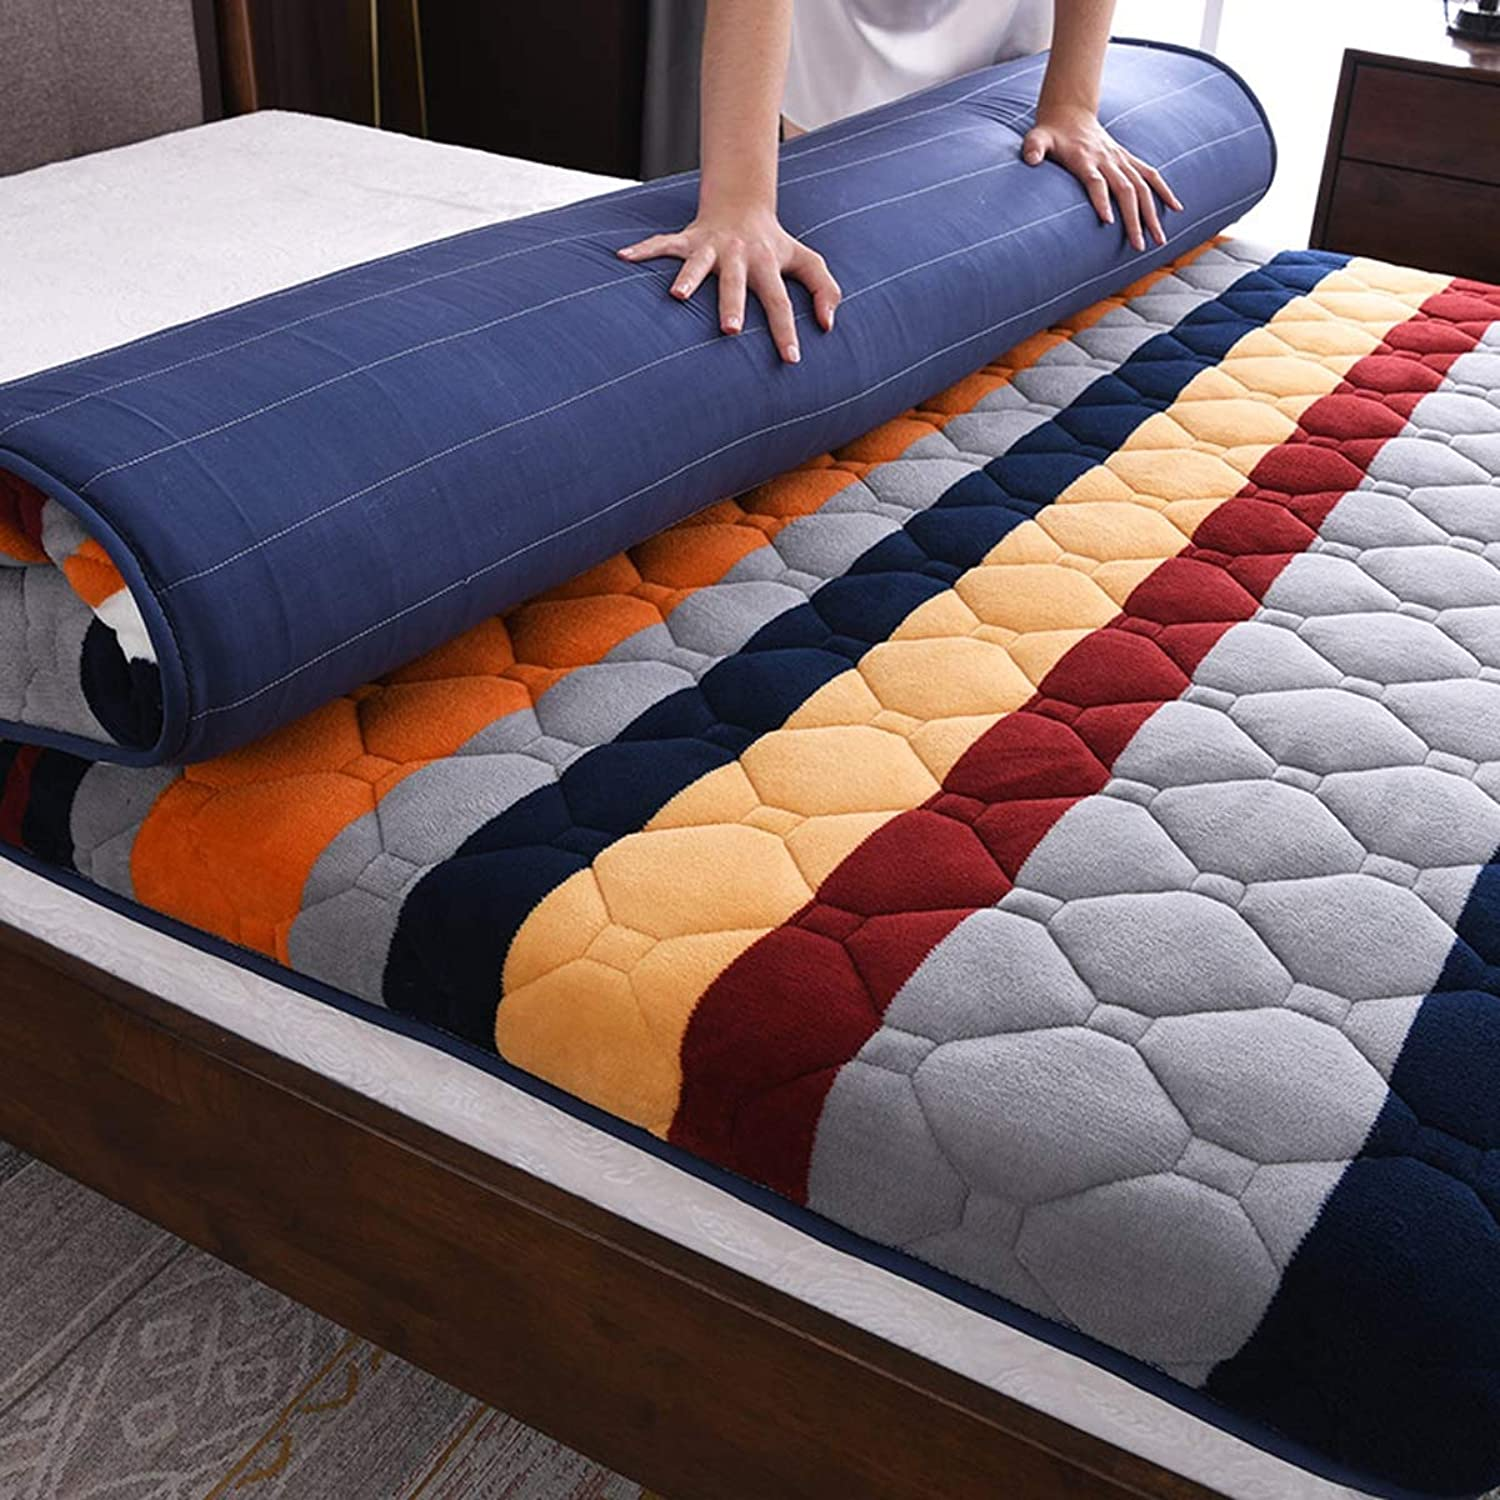 10cm Thick Flannel Floor Futon Mattress, Japanese Traditional Futon Mattress Classe Sleeping Tatami Floor mat Mattress Topper for Dorm Bedroom,B,100  200cm